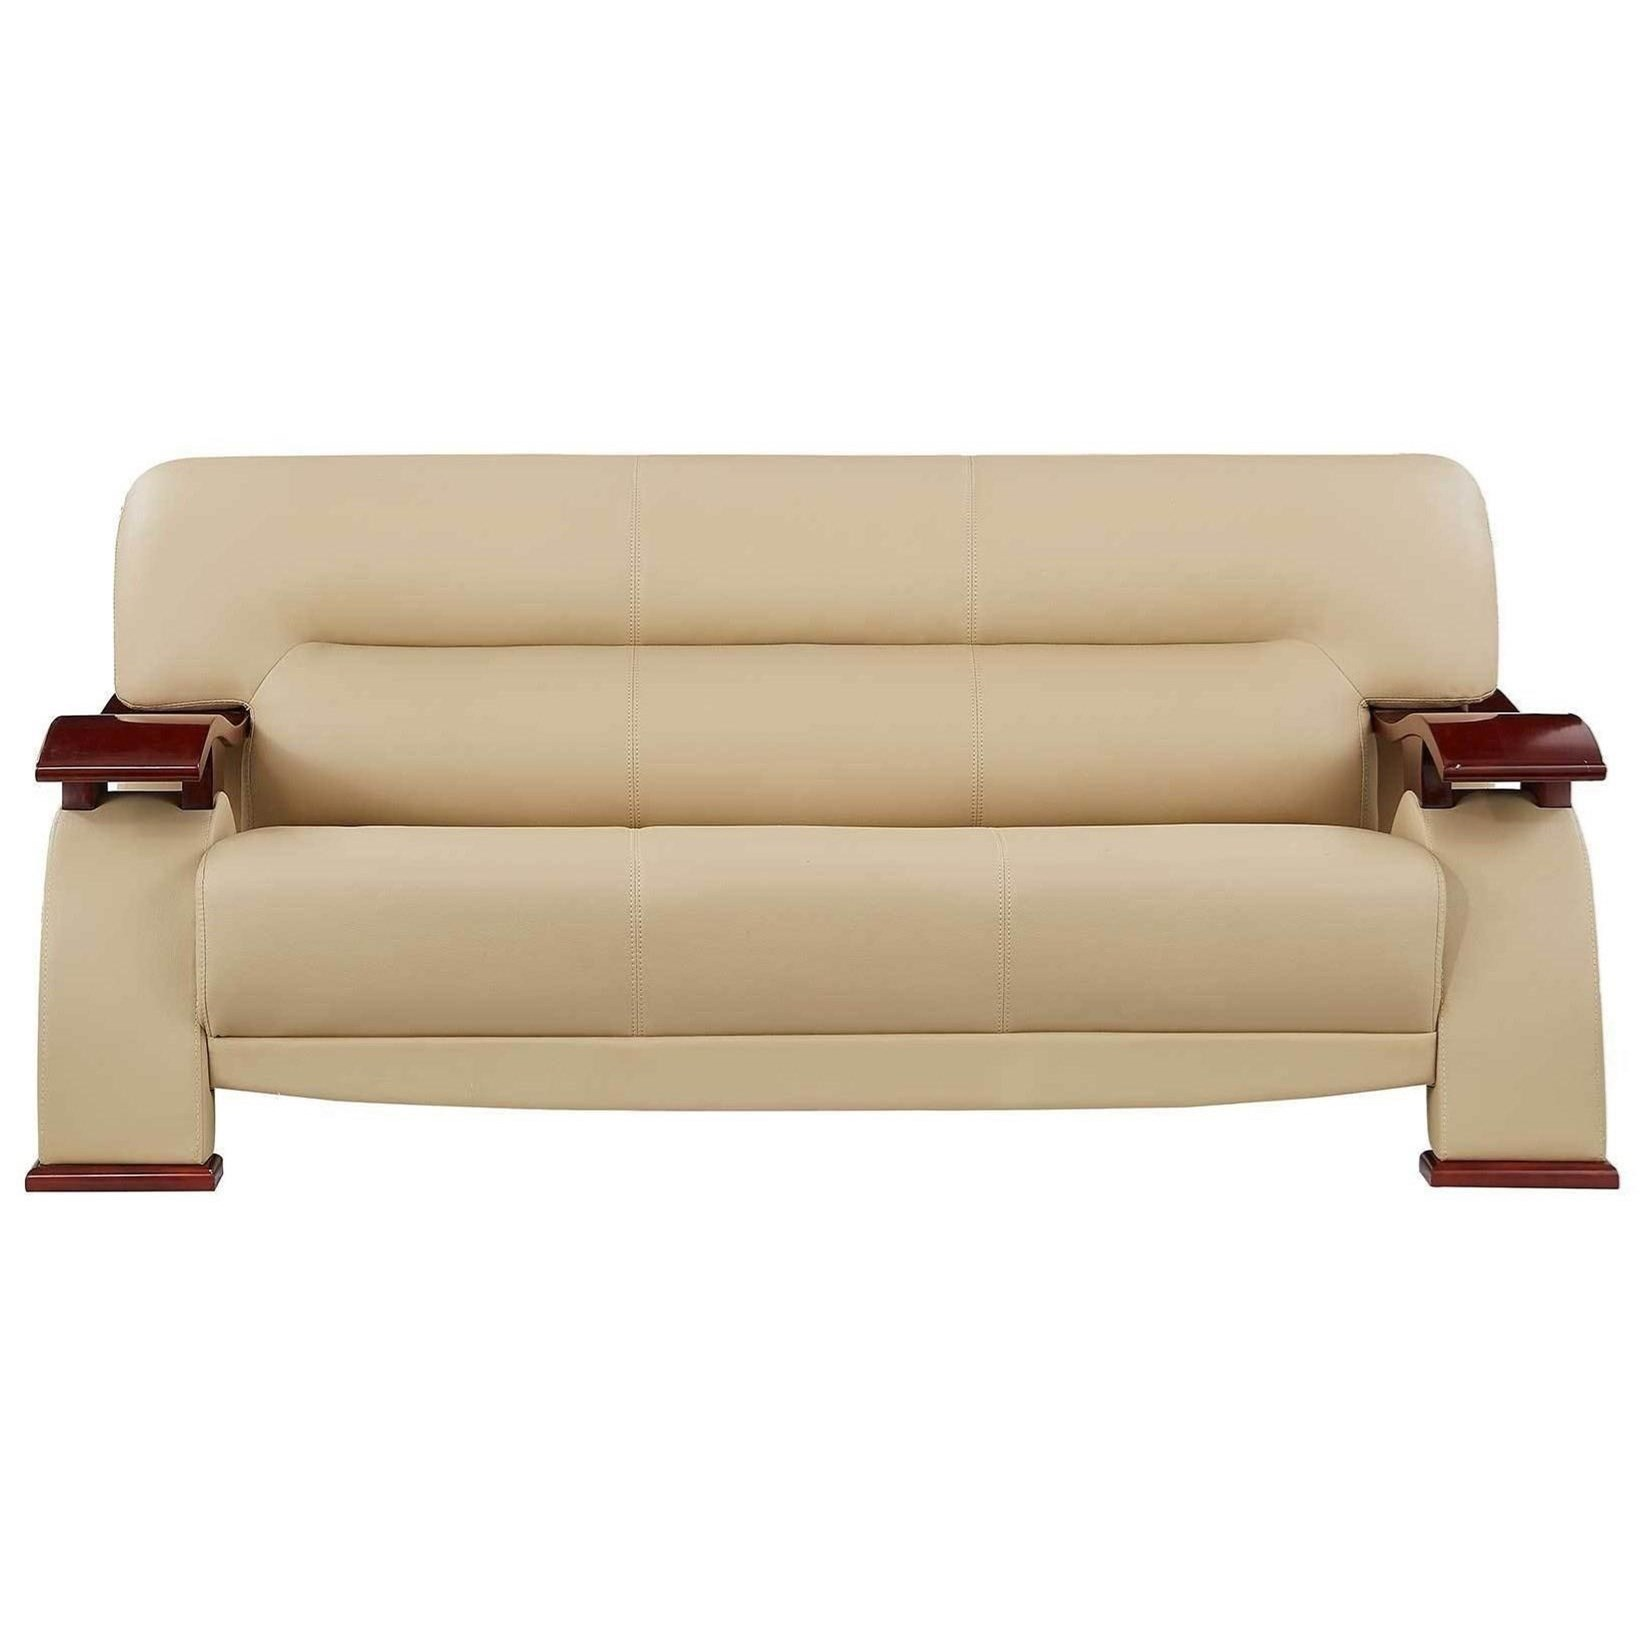 Sofa Couch For Rv Global Furniture U2033 U2033 Rv Cap S Sofa With Wood Arms Corner